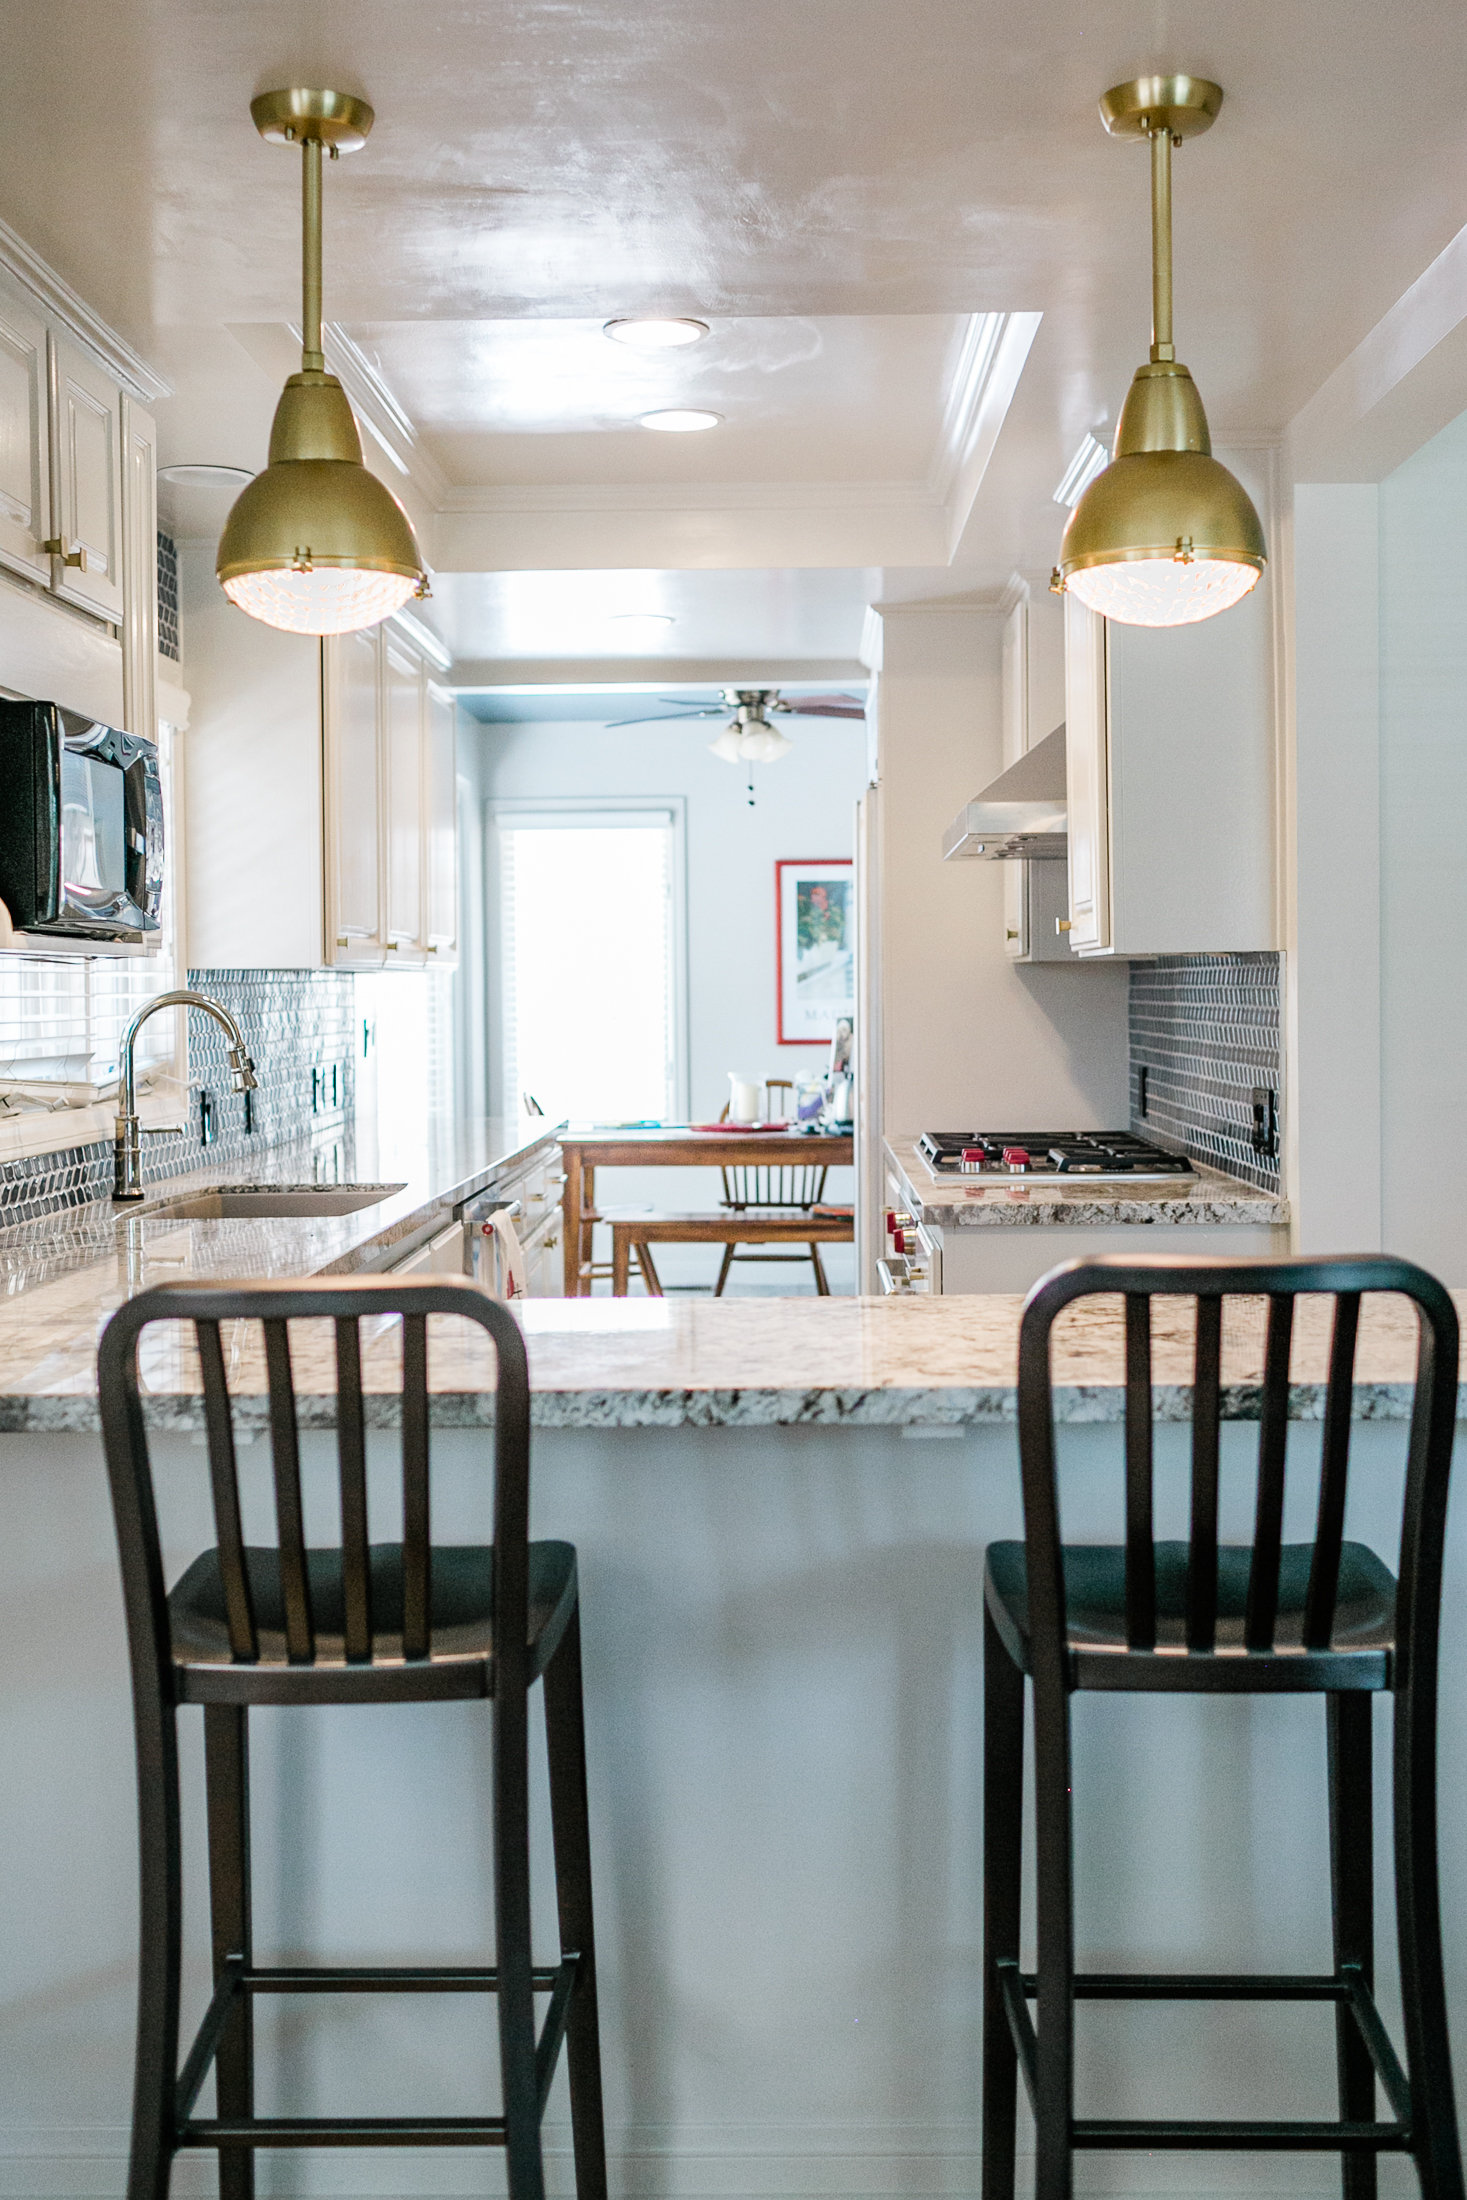 very blue kitchen, Kitchen, Dining Room, remodel, painted ceiling, dmv interior designer, bowie maryland, washington dc, pendants